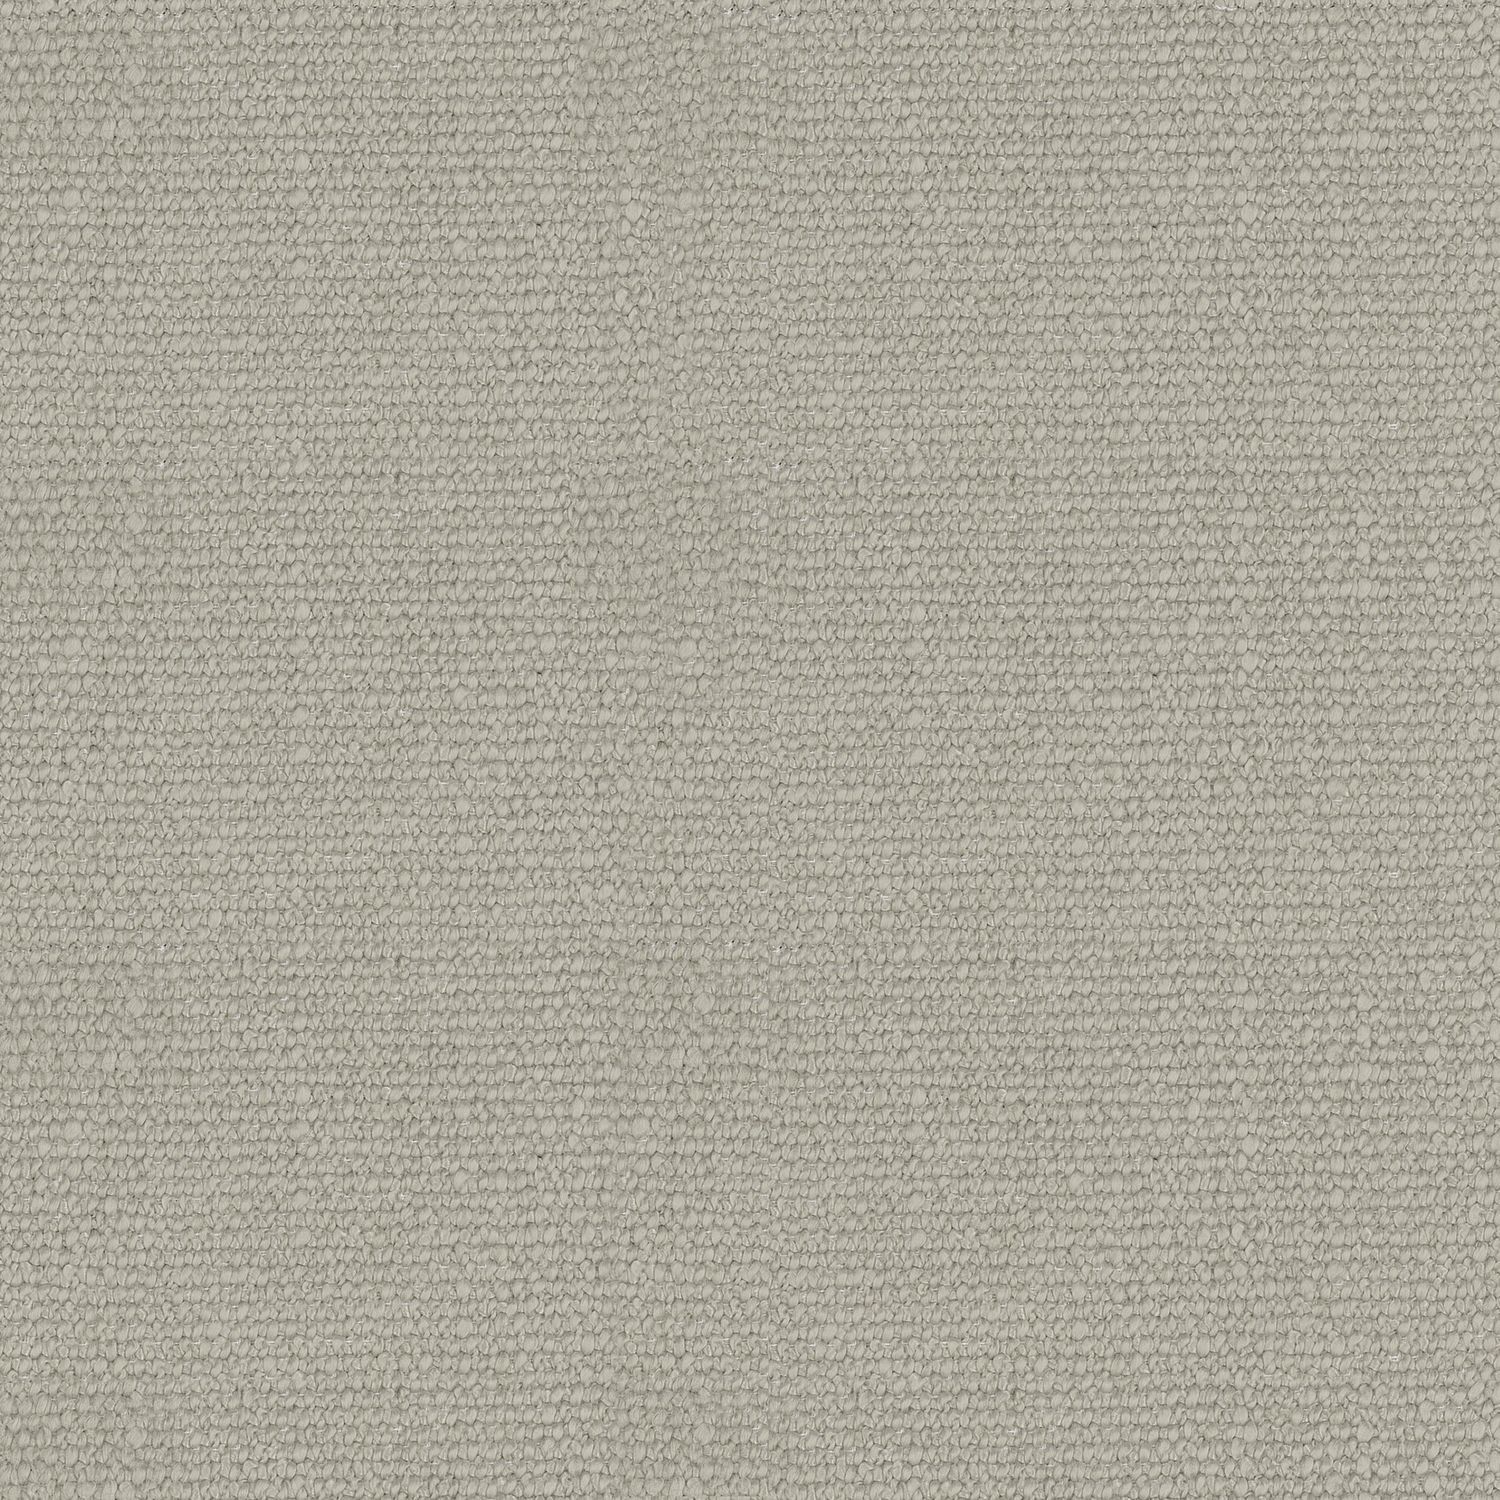 43590821 Collection - Rondo Fabric